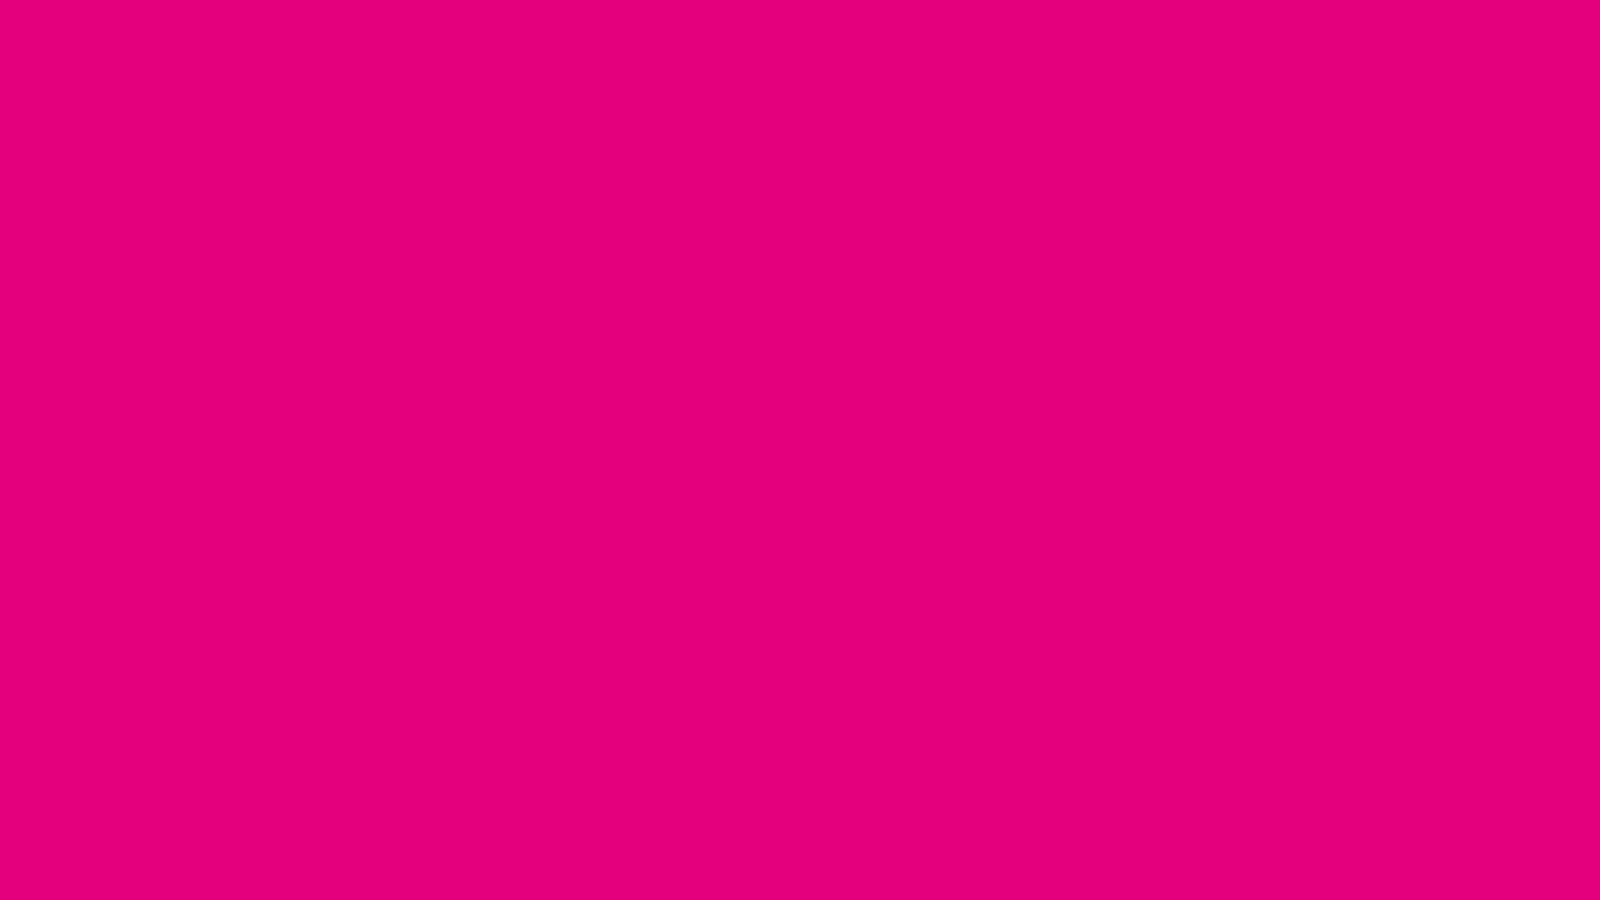 1600x900 Mexican Pink Solid Color Background